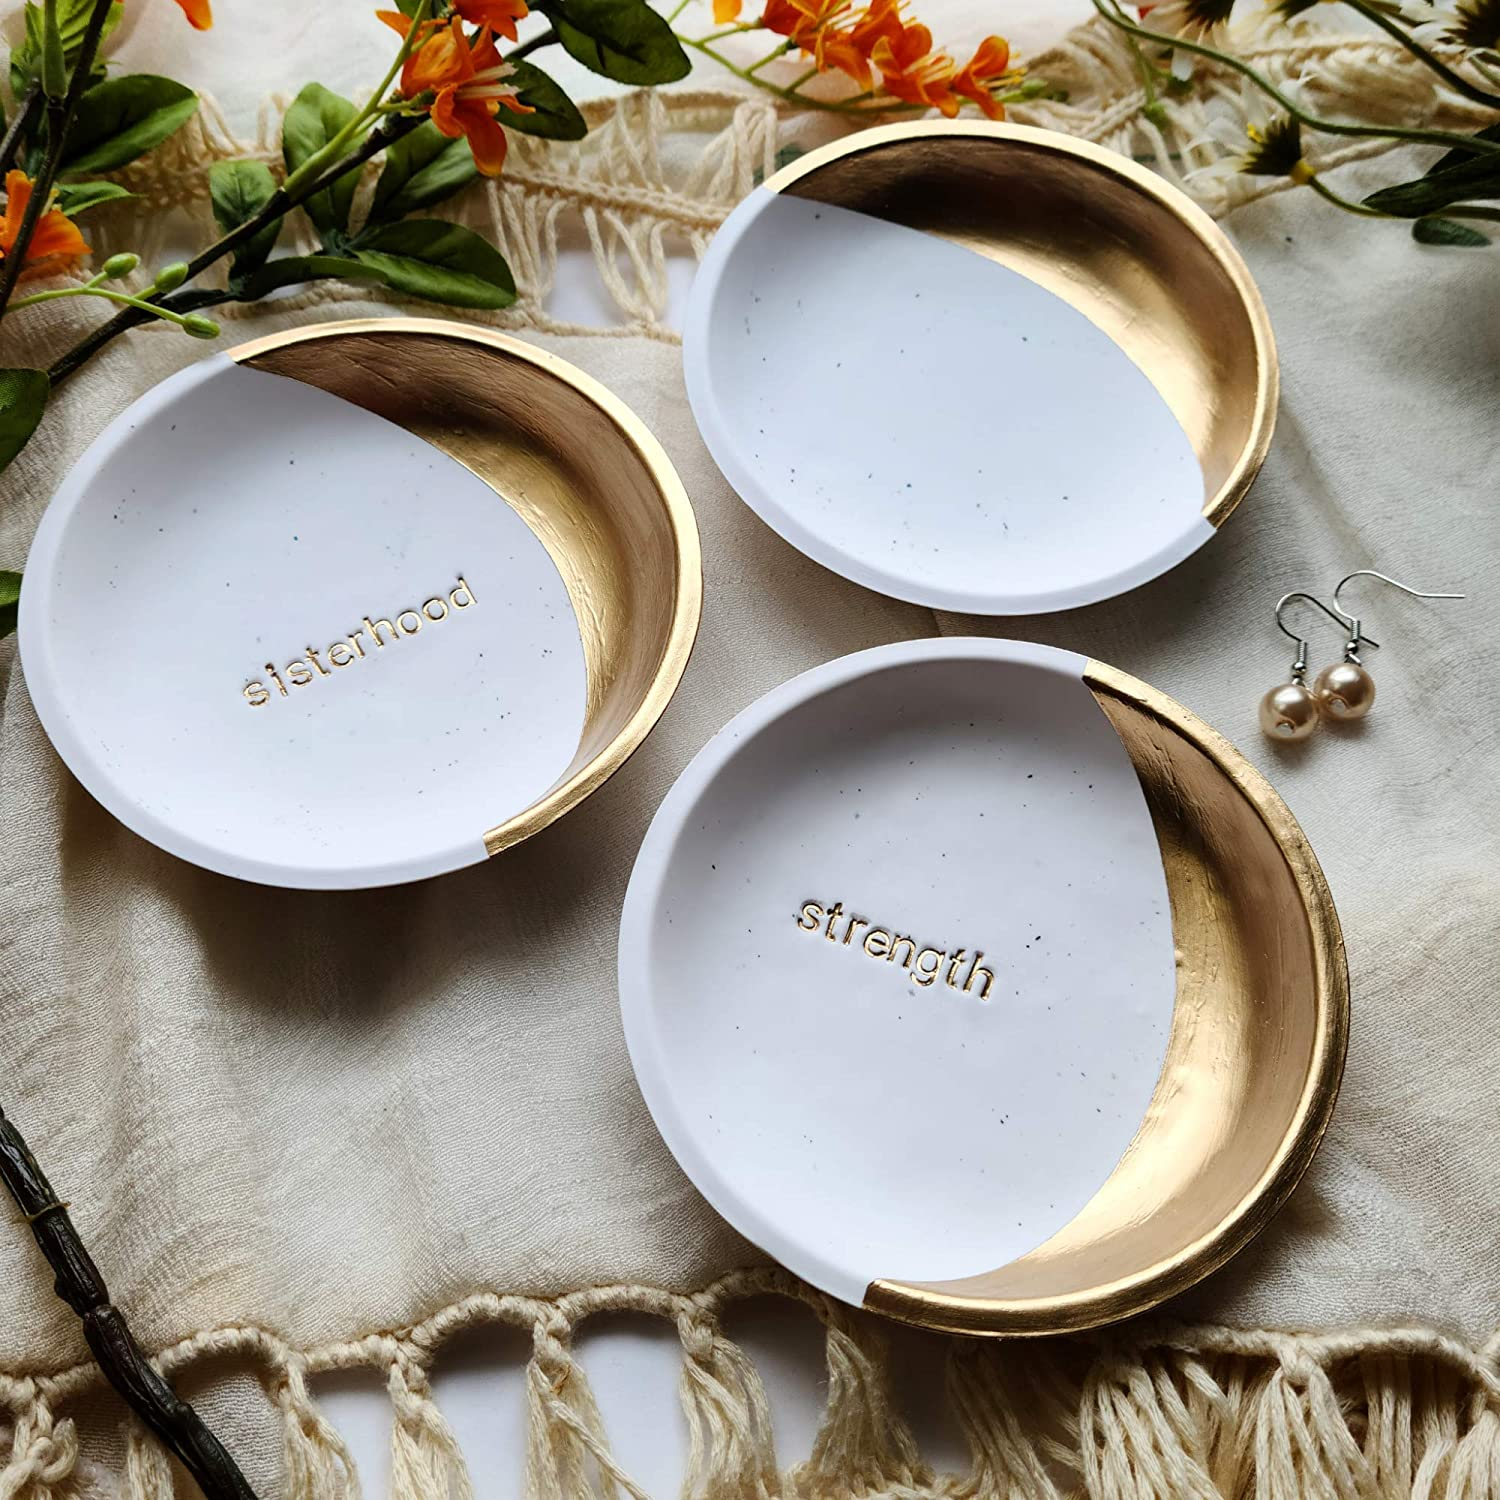 Cute Tiny Ceramic Personalized Engagement Ring Dish gold or silver rim 14 color options Small Ruby Red Customizable Wedding Ring Holder